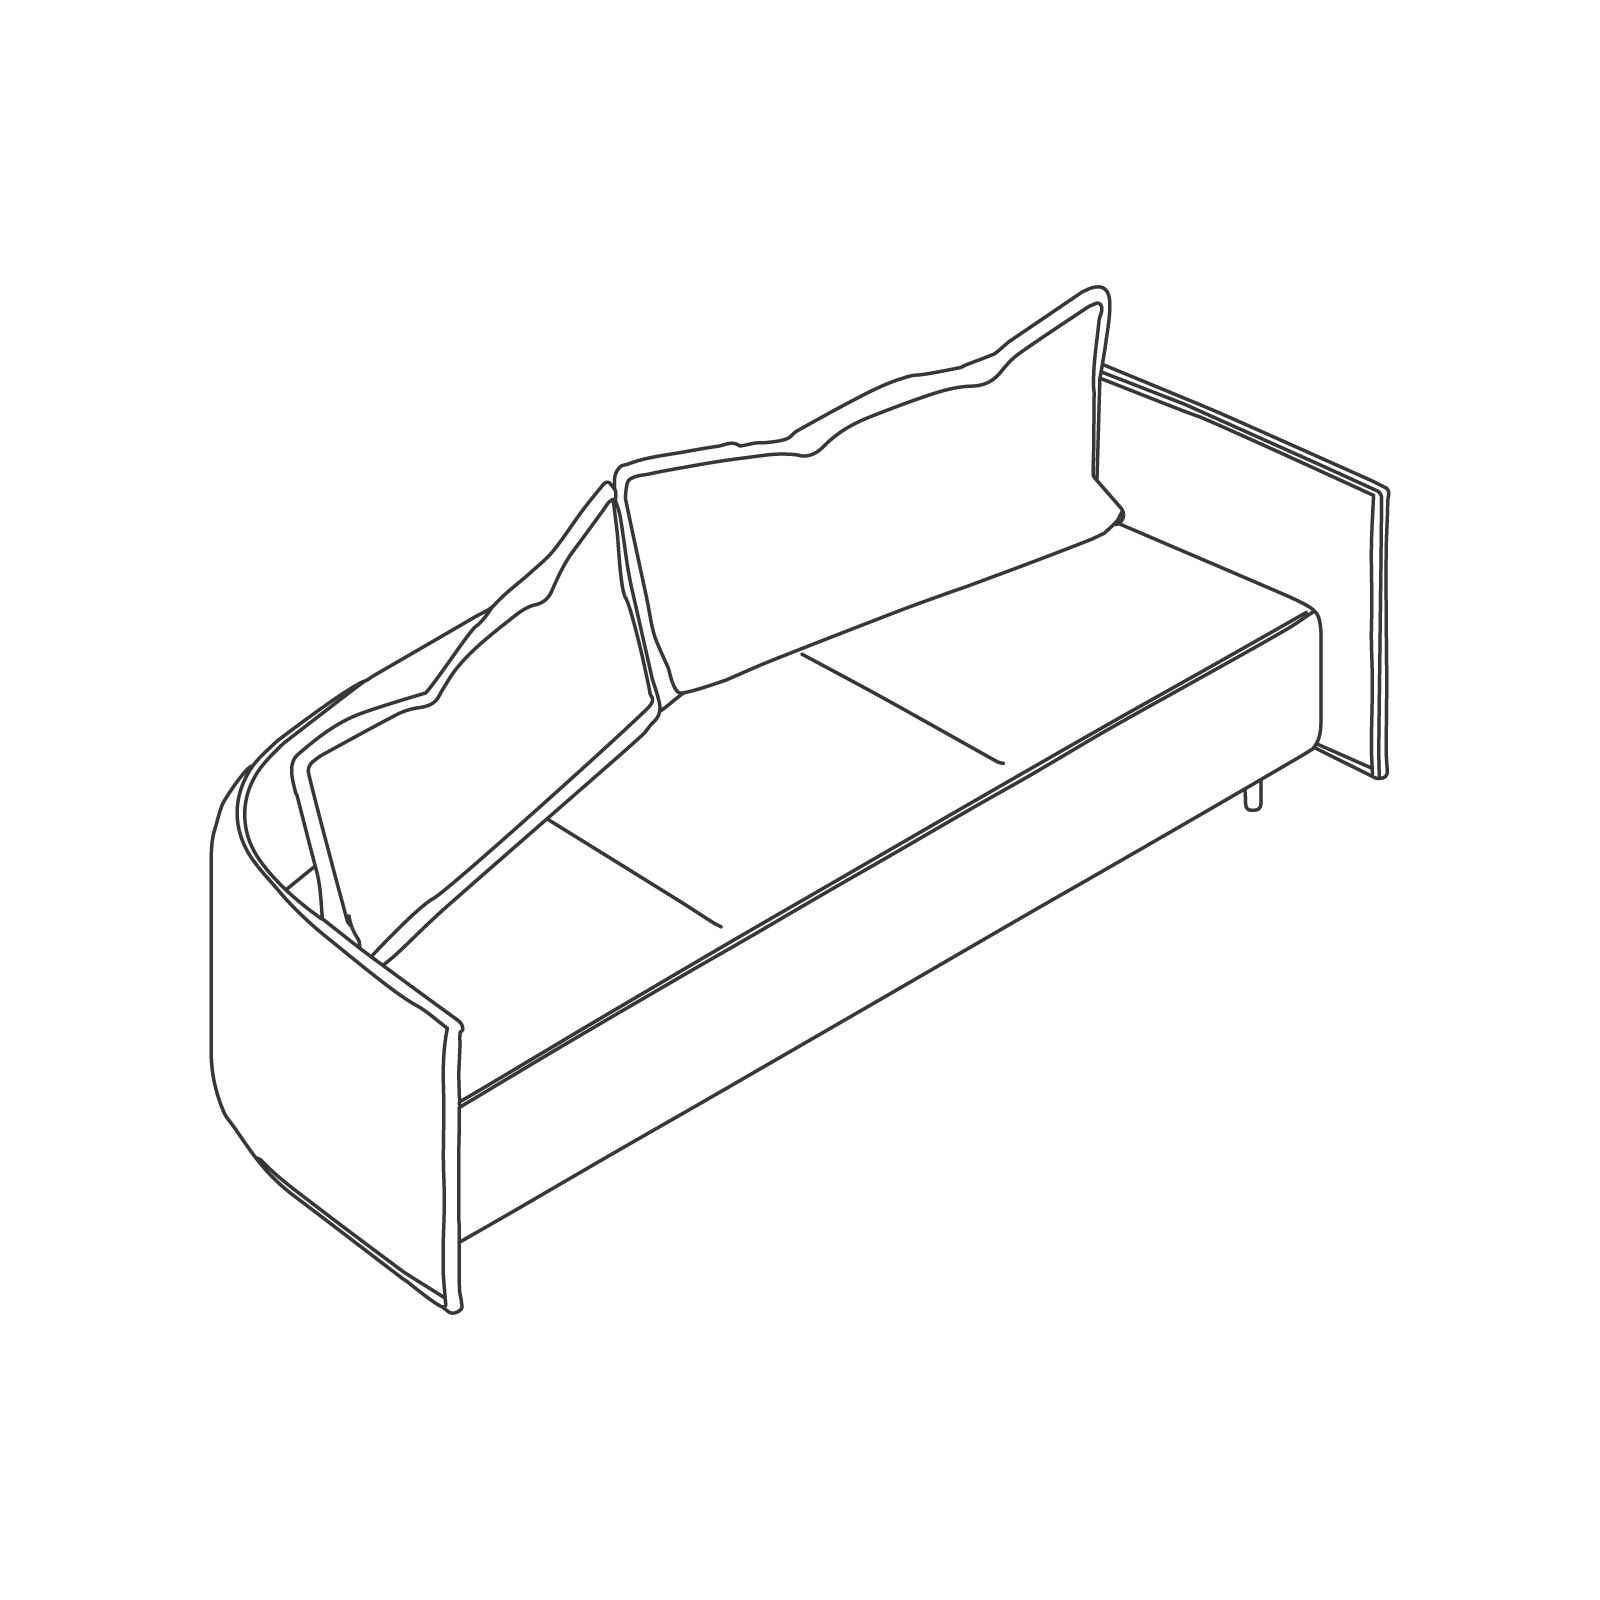 A line drawing of Cloud Plain Sofa–Low Back–3 Seat.